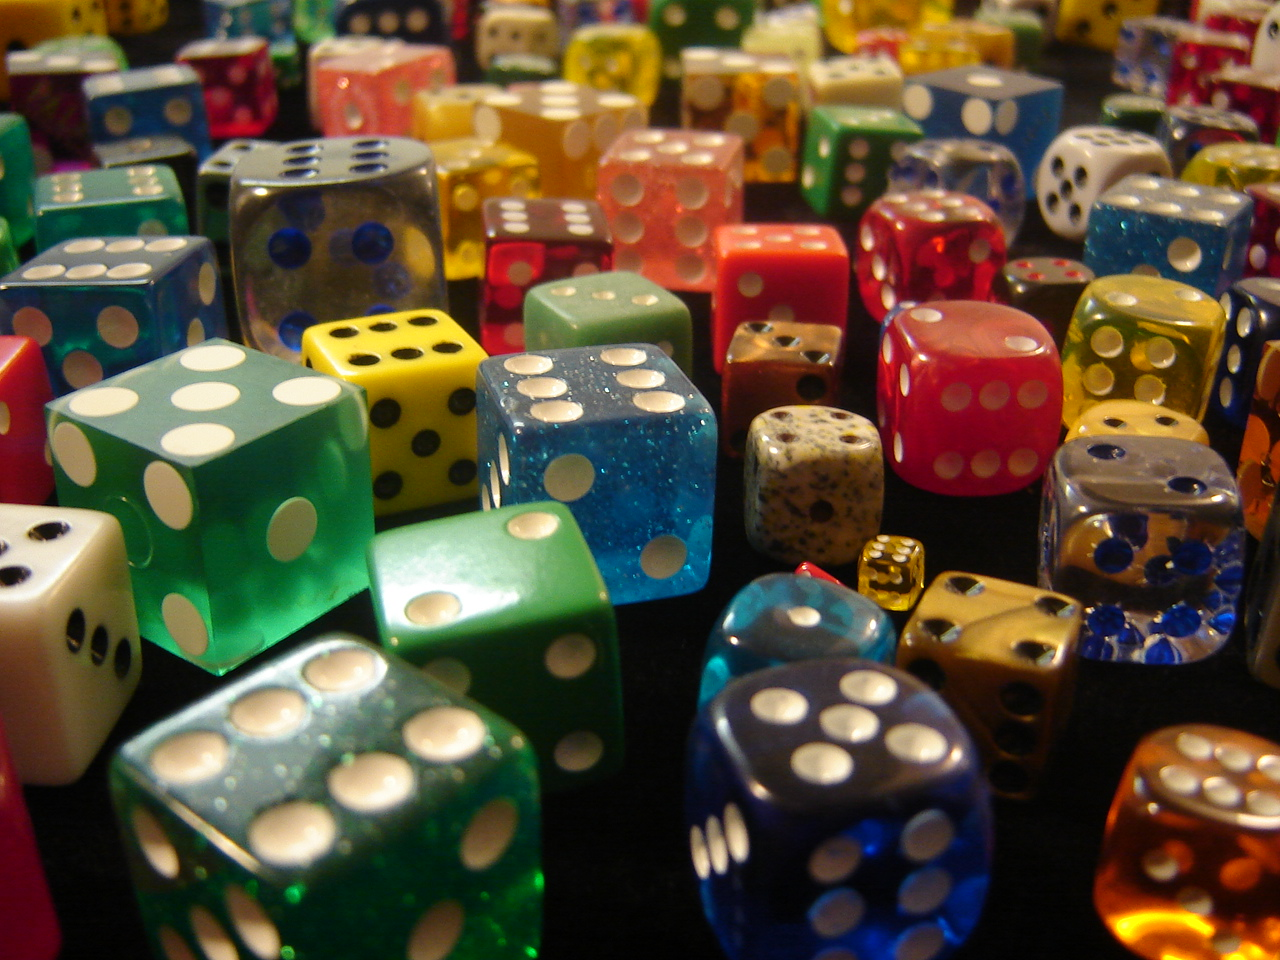 Many Dice  Gambling Objects Wallpaper Image